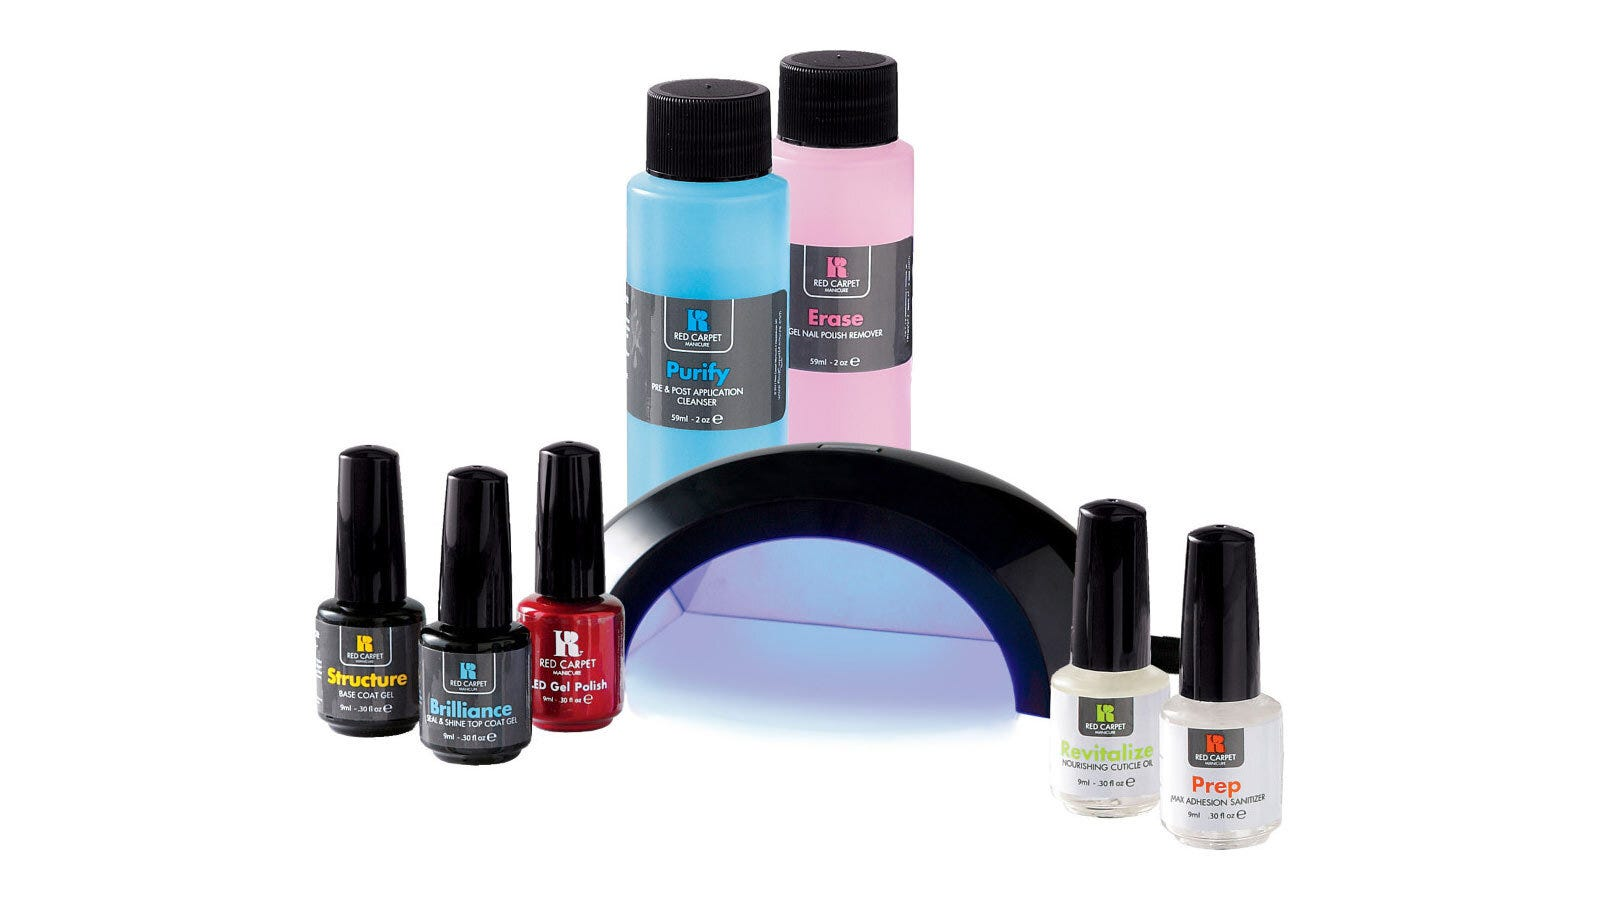 Five nail polish bottles, two cleanser bottles, and a black UV hand light